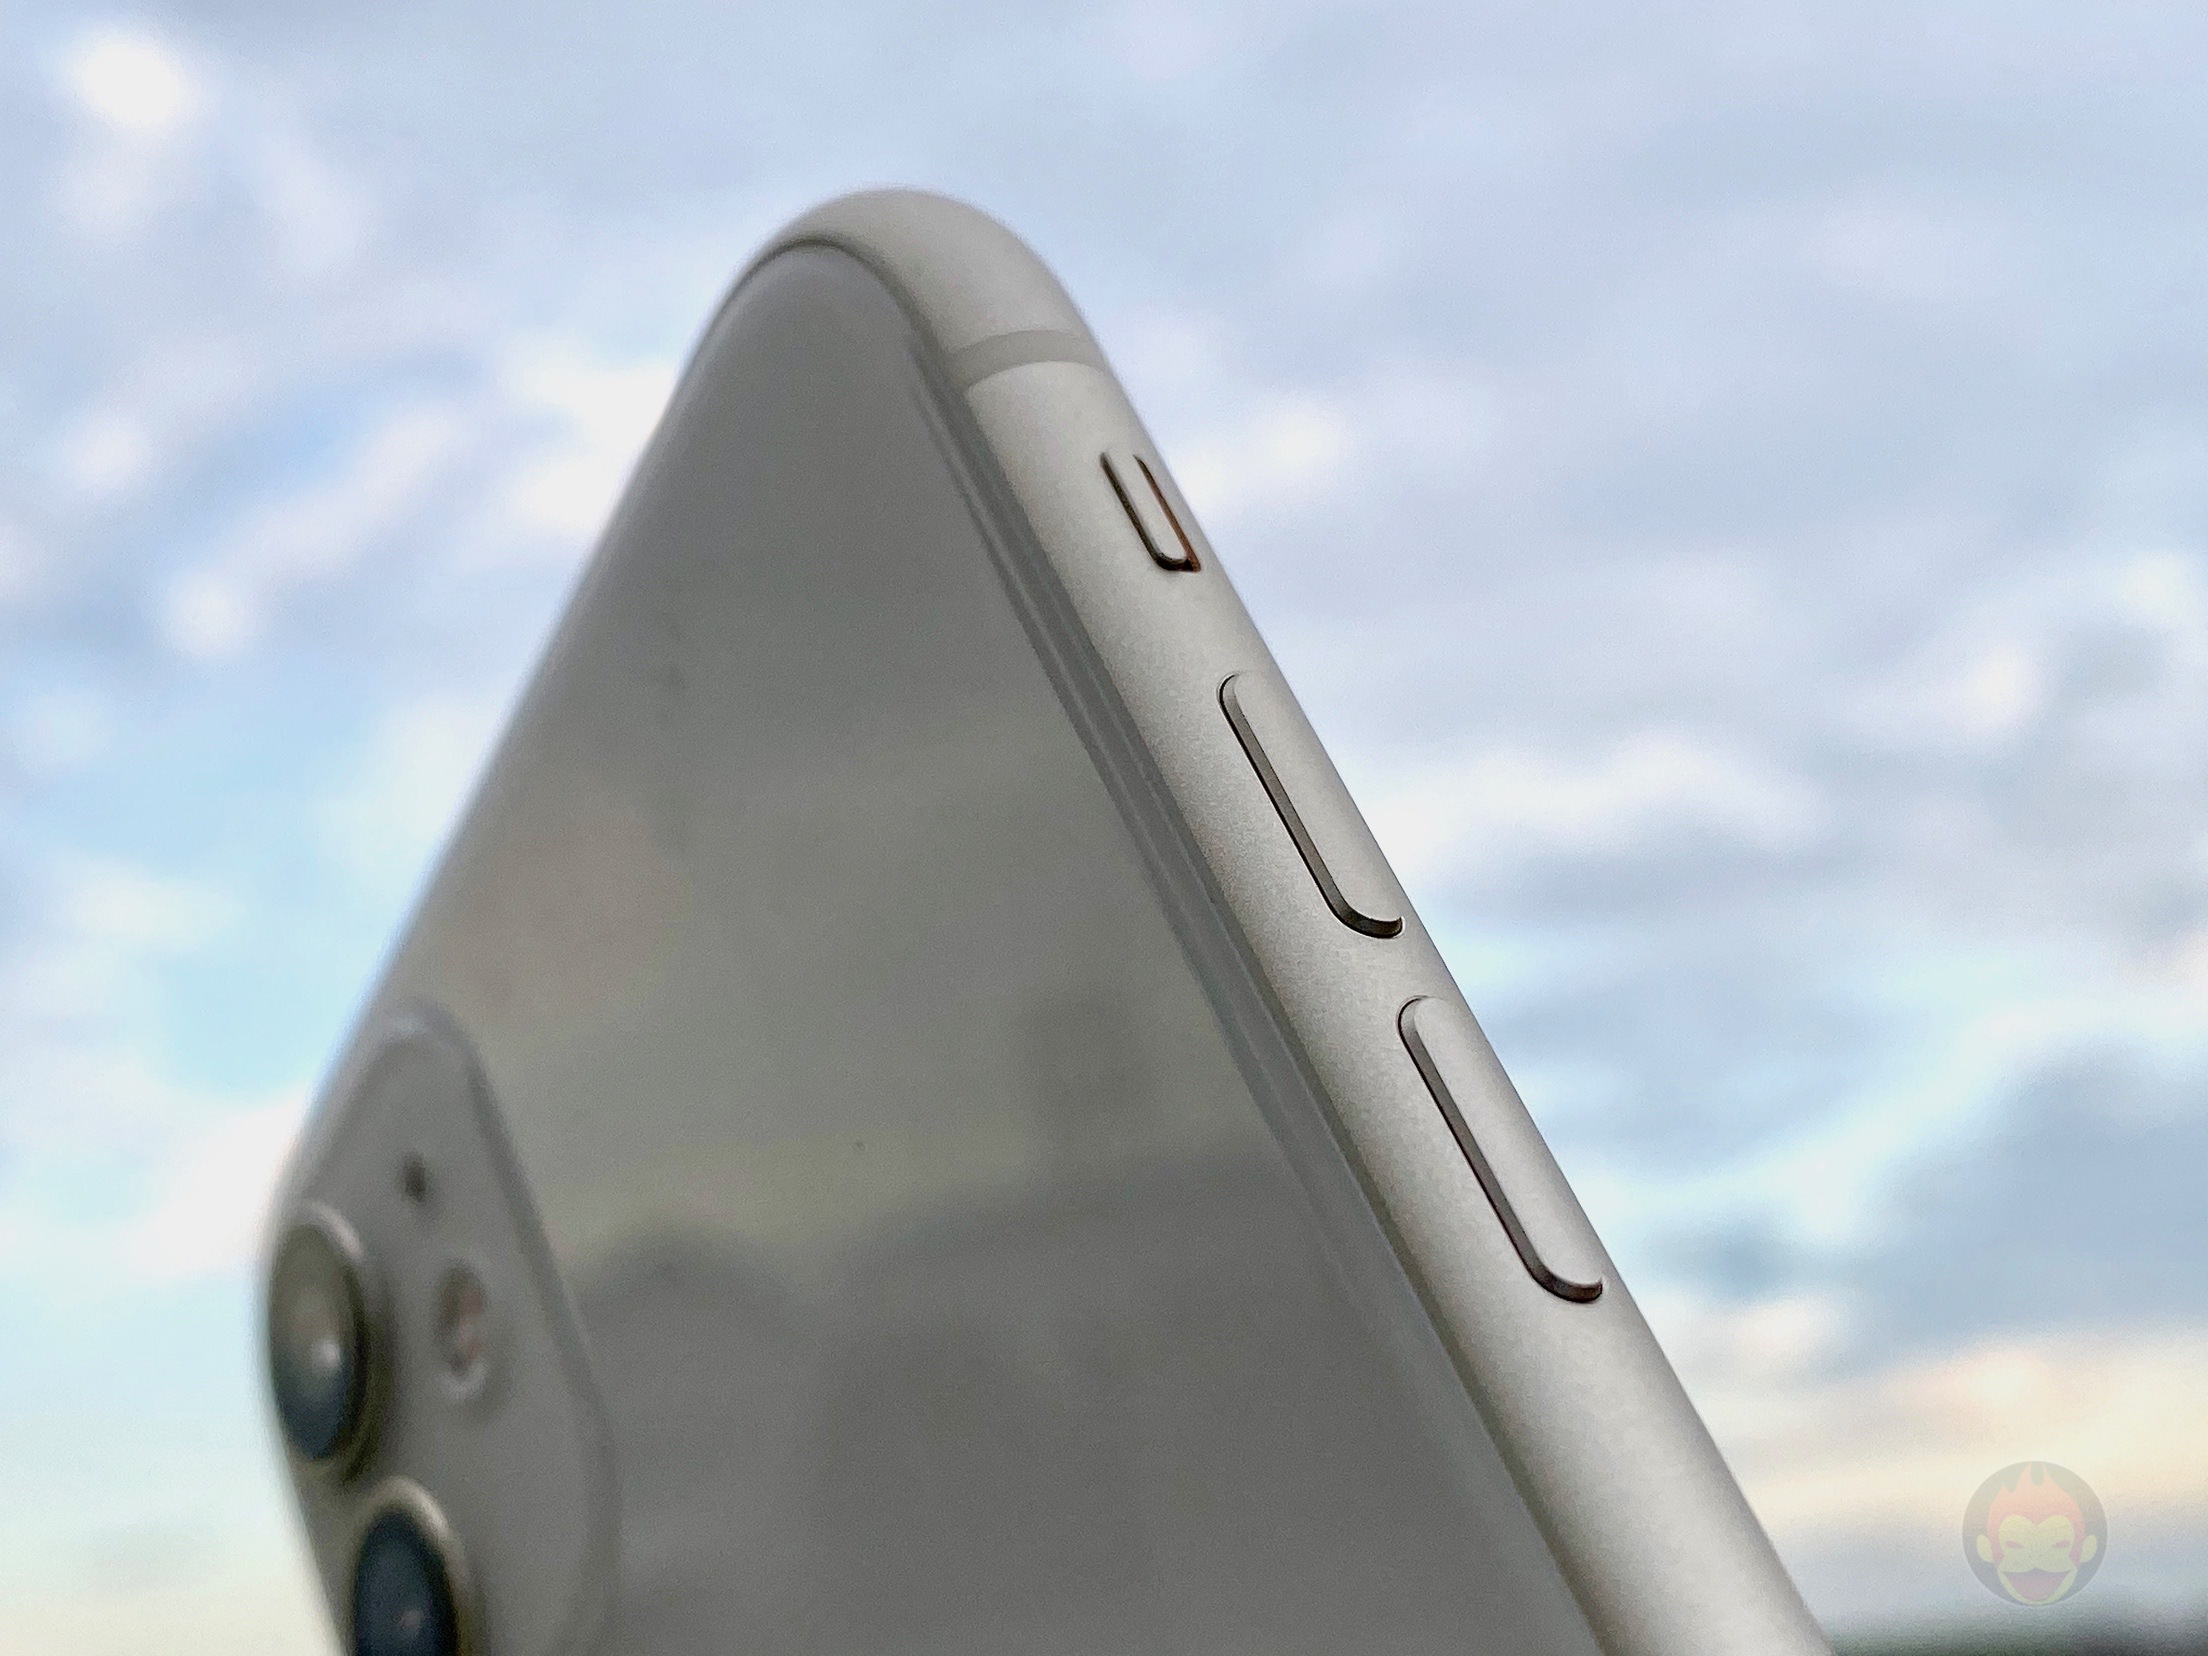 iPhone-11-White-Model-First-Impressions-05.jpg